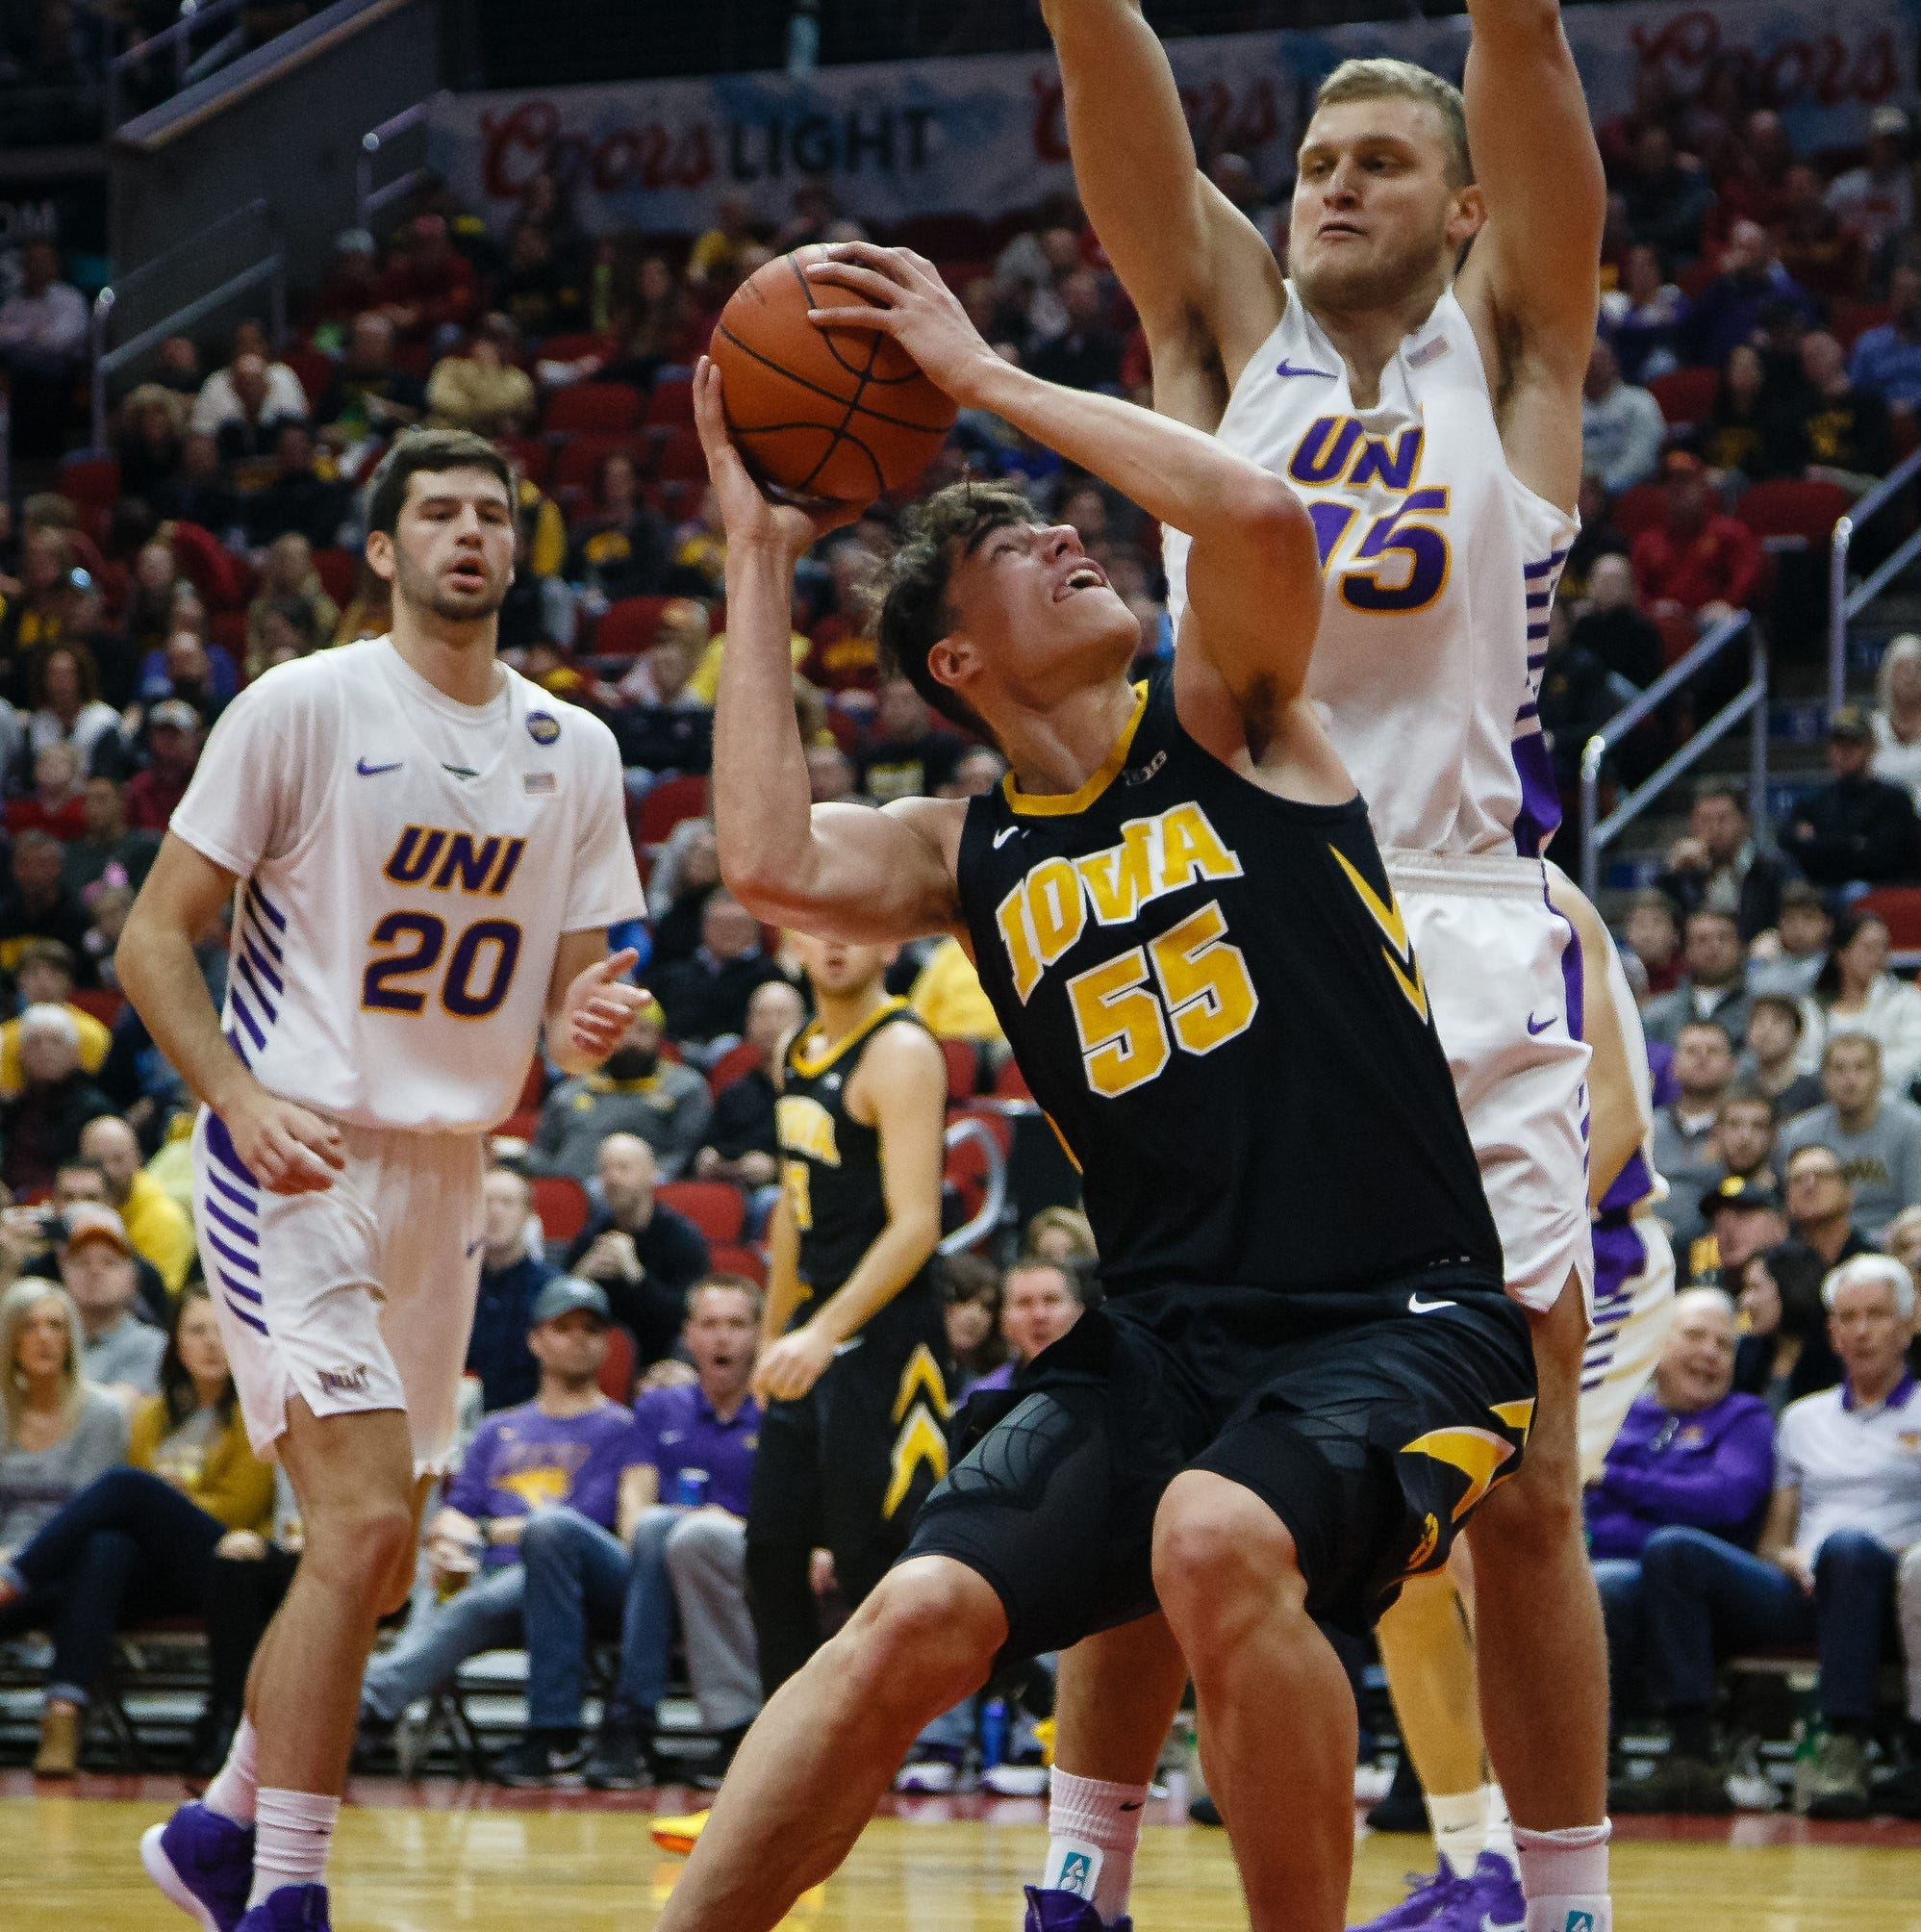 No. 21 Iowa Hawkeyes manhandle Northern Iowa in Hy-Vee Classic farewell